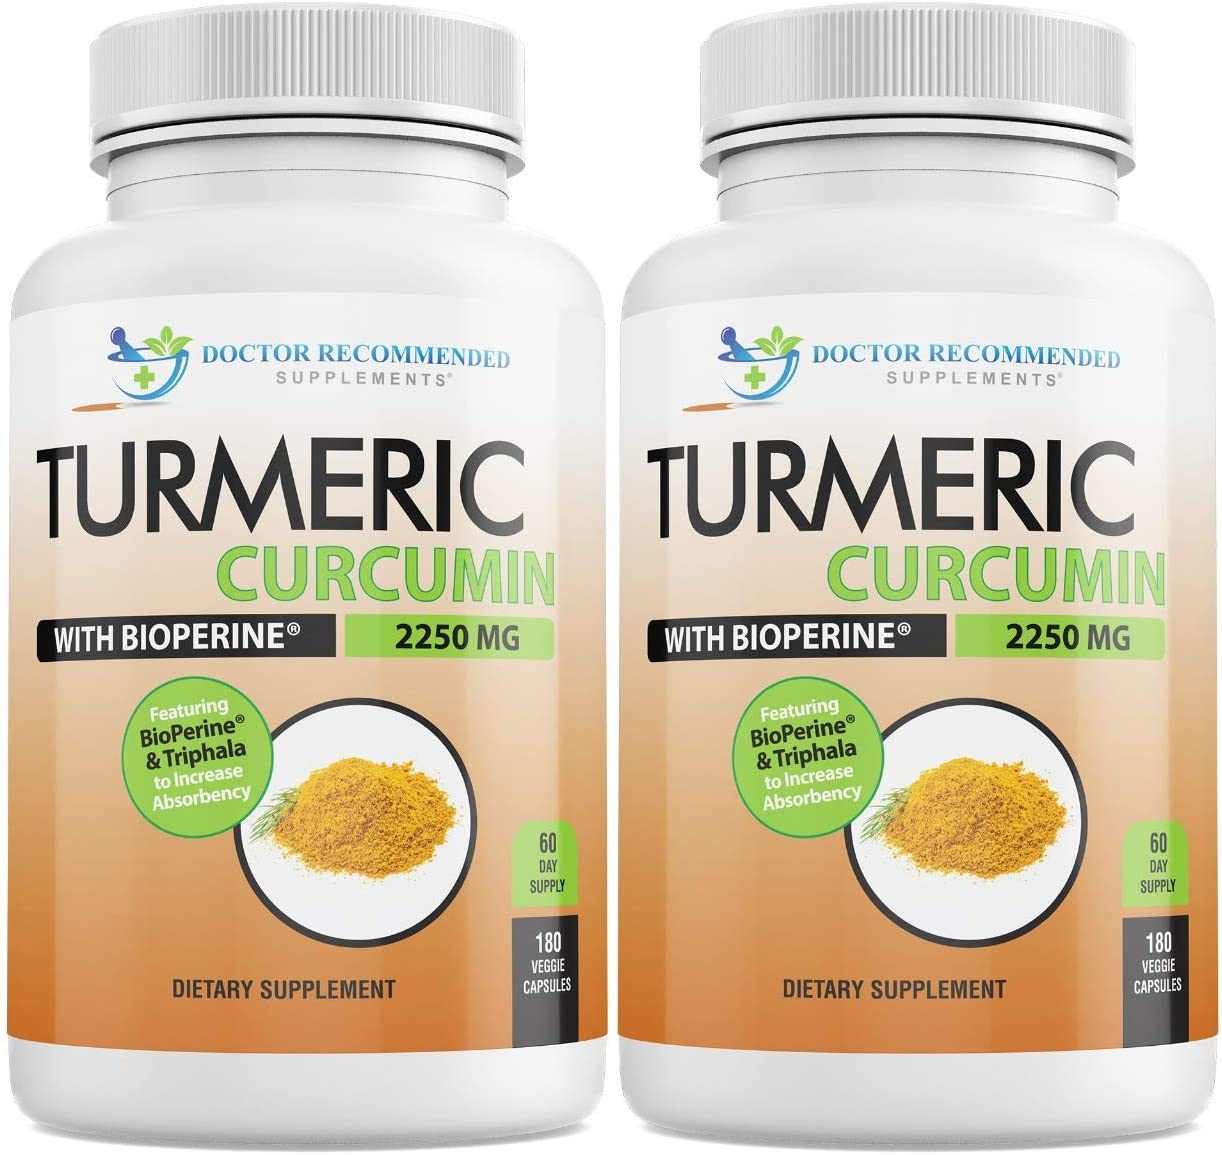 Turmeric Curcumin with Bioperine – 360 Veggie Caps – 2250mg 95 Curcuminoids Highest Max Potency with Black Pepper for Anti-Inflammatory Joint Pain Relief Pills – Supplement with Triphala